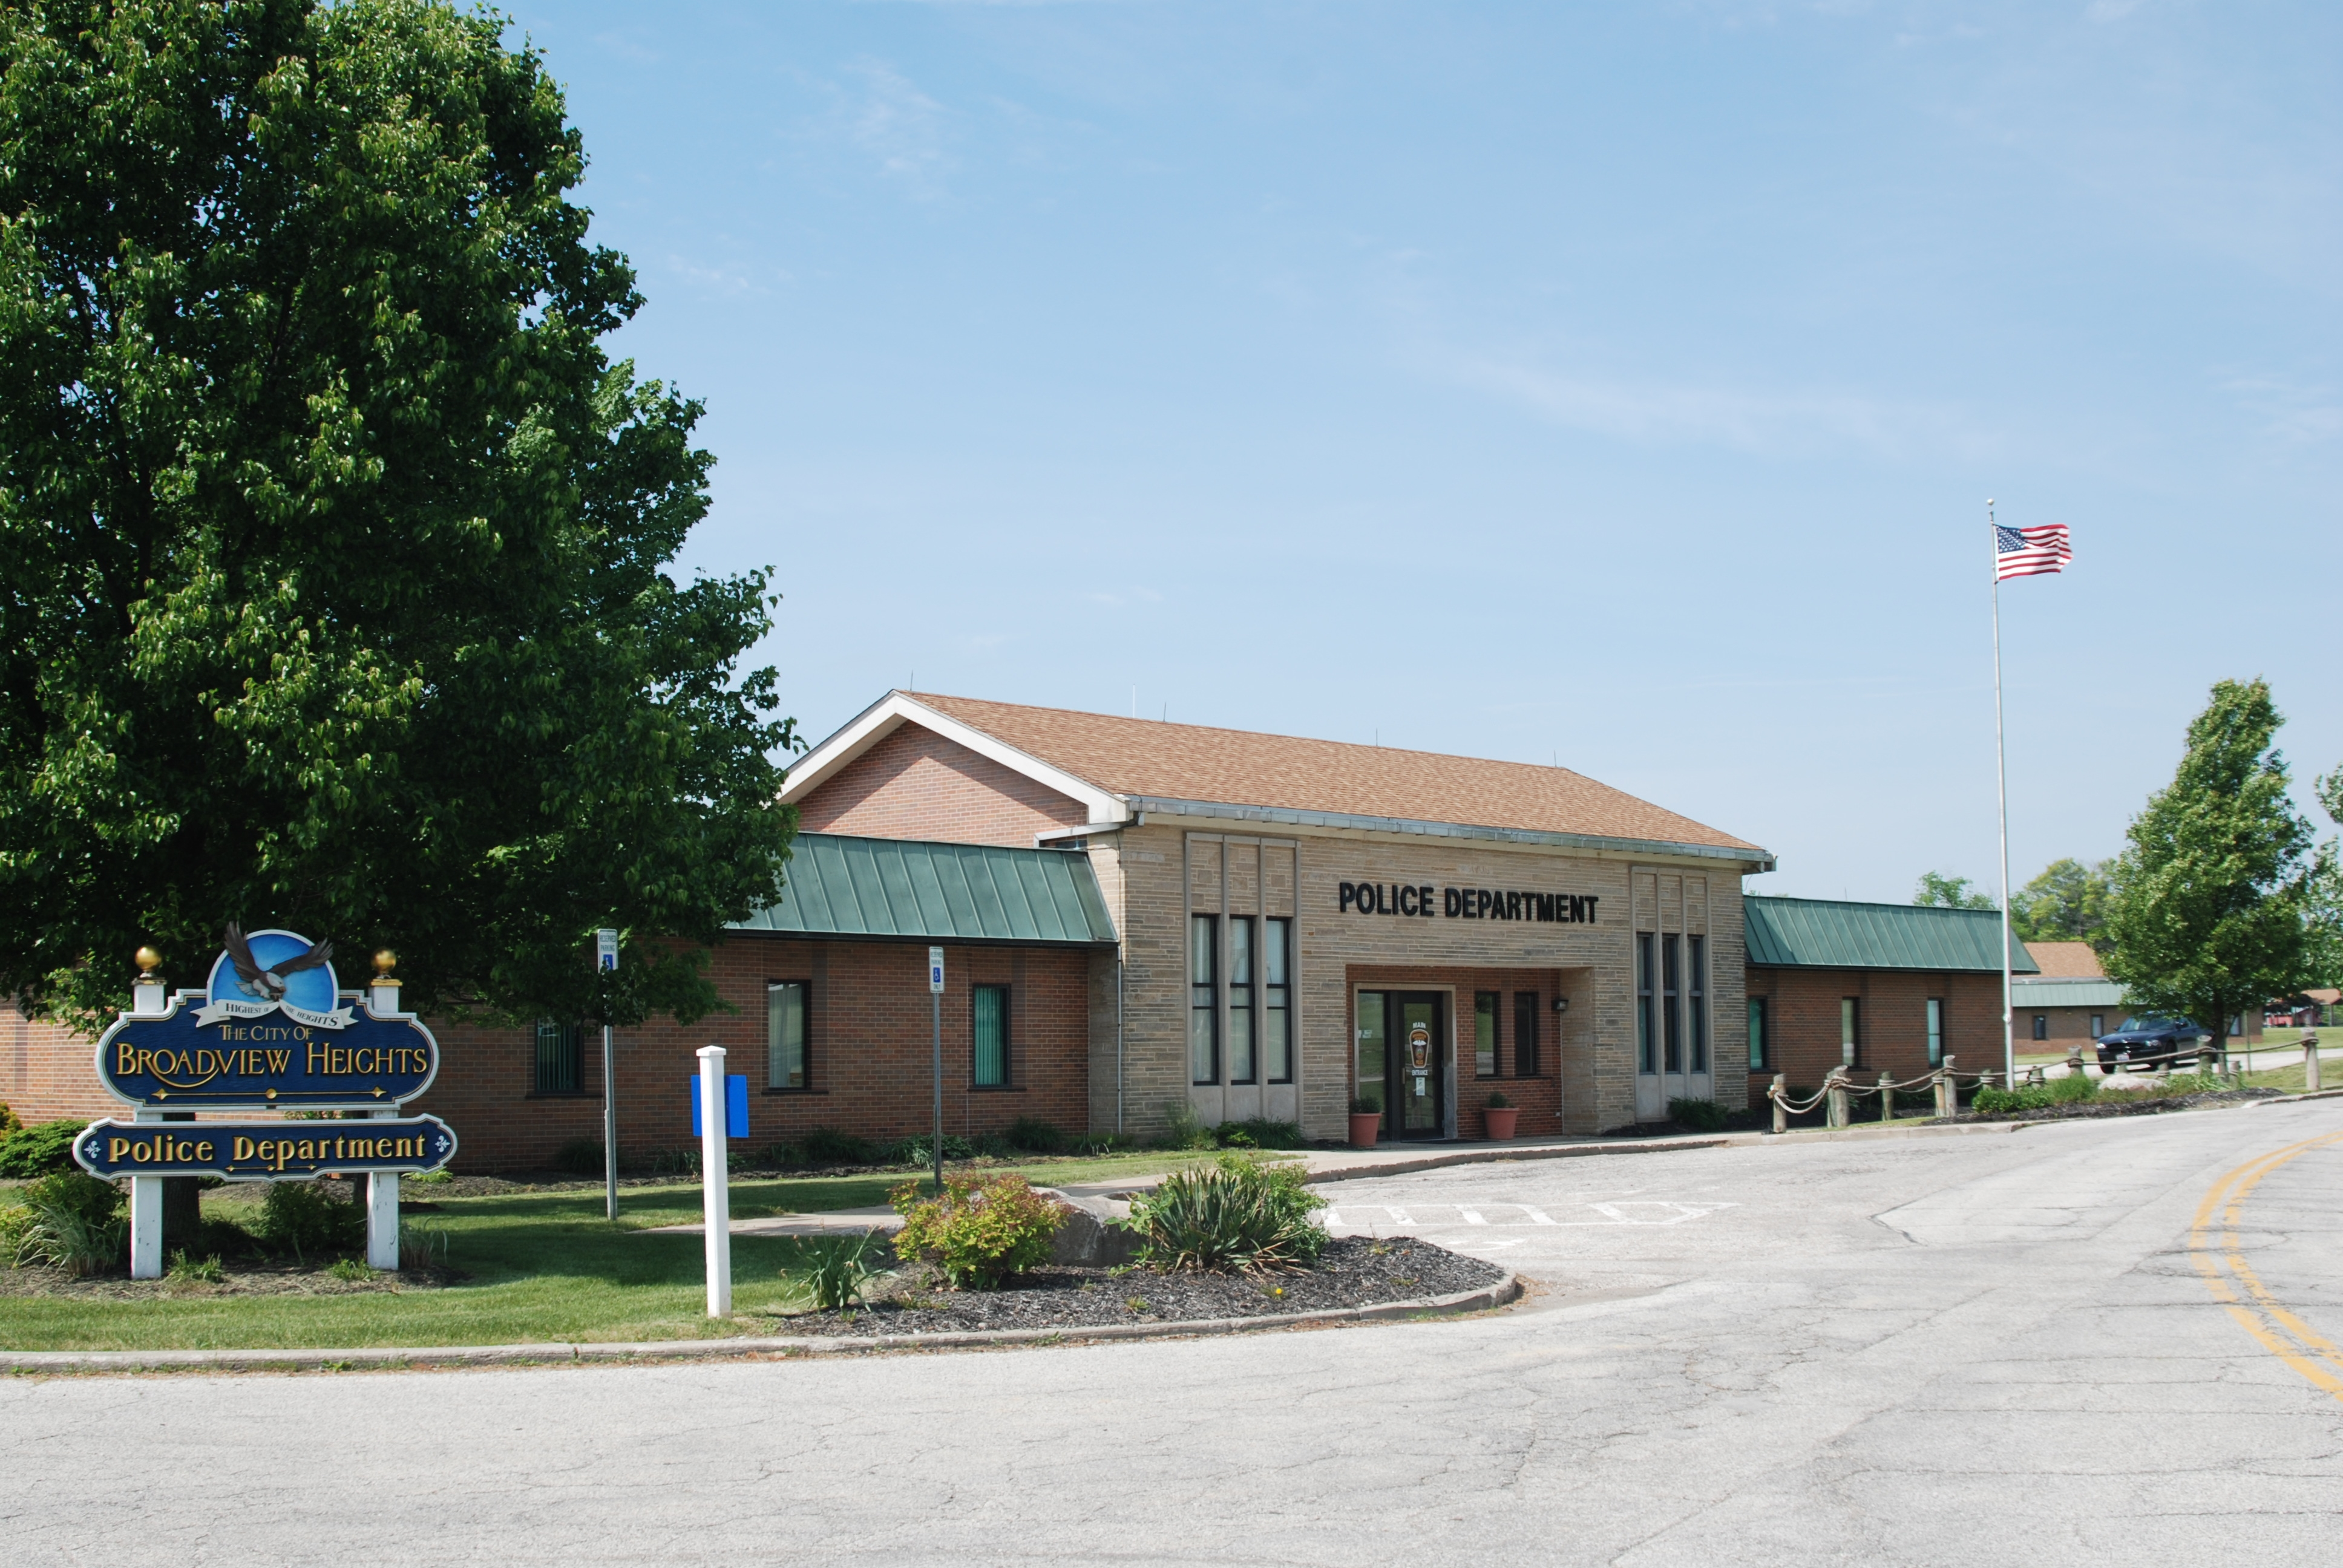 Broadview Heights Police Station